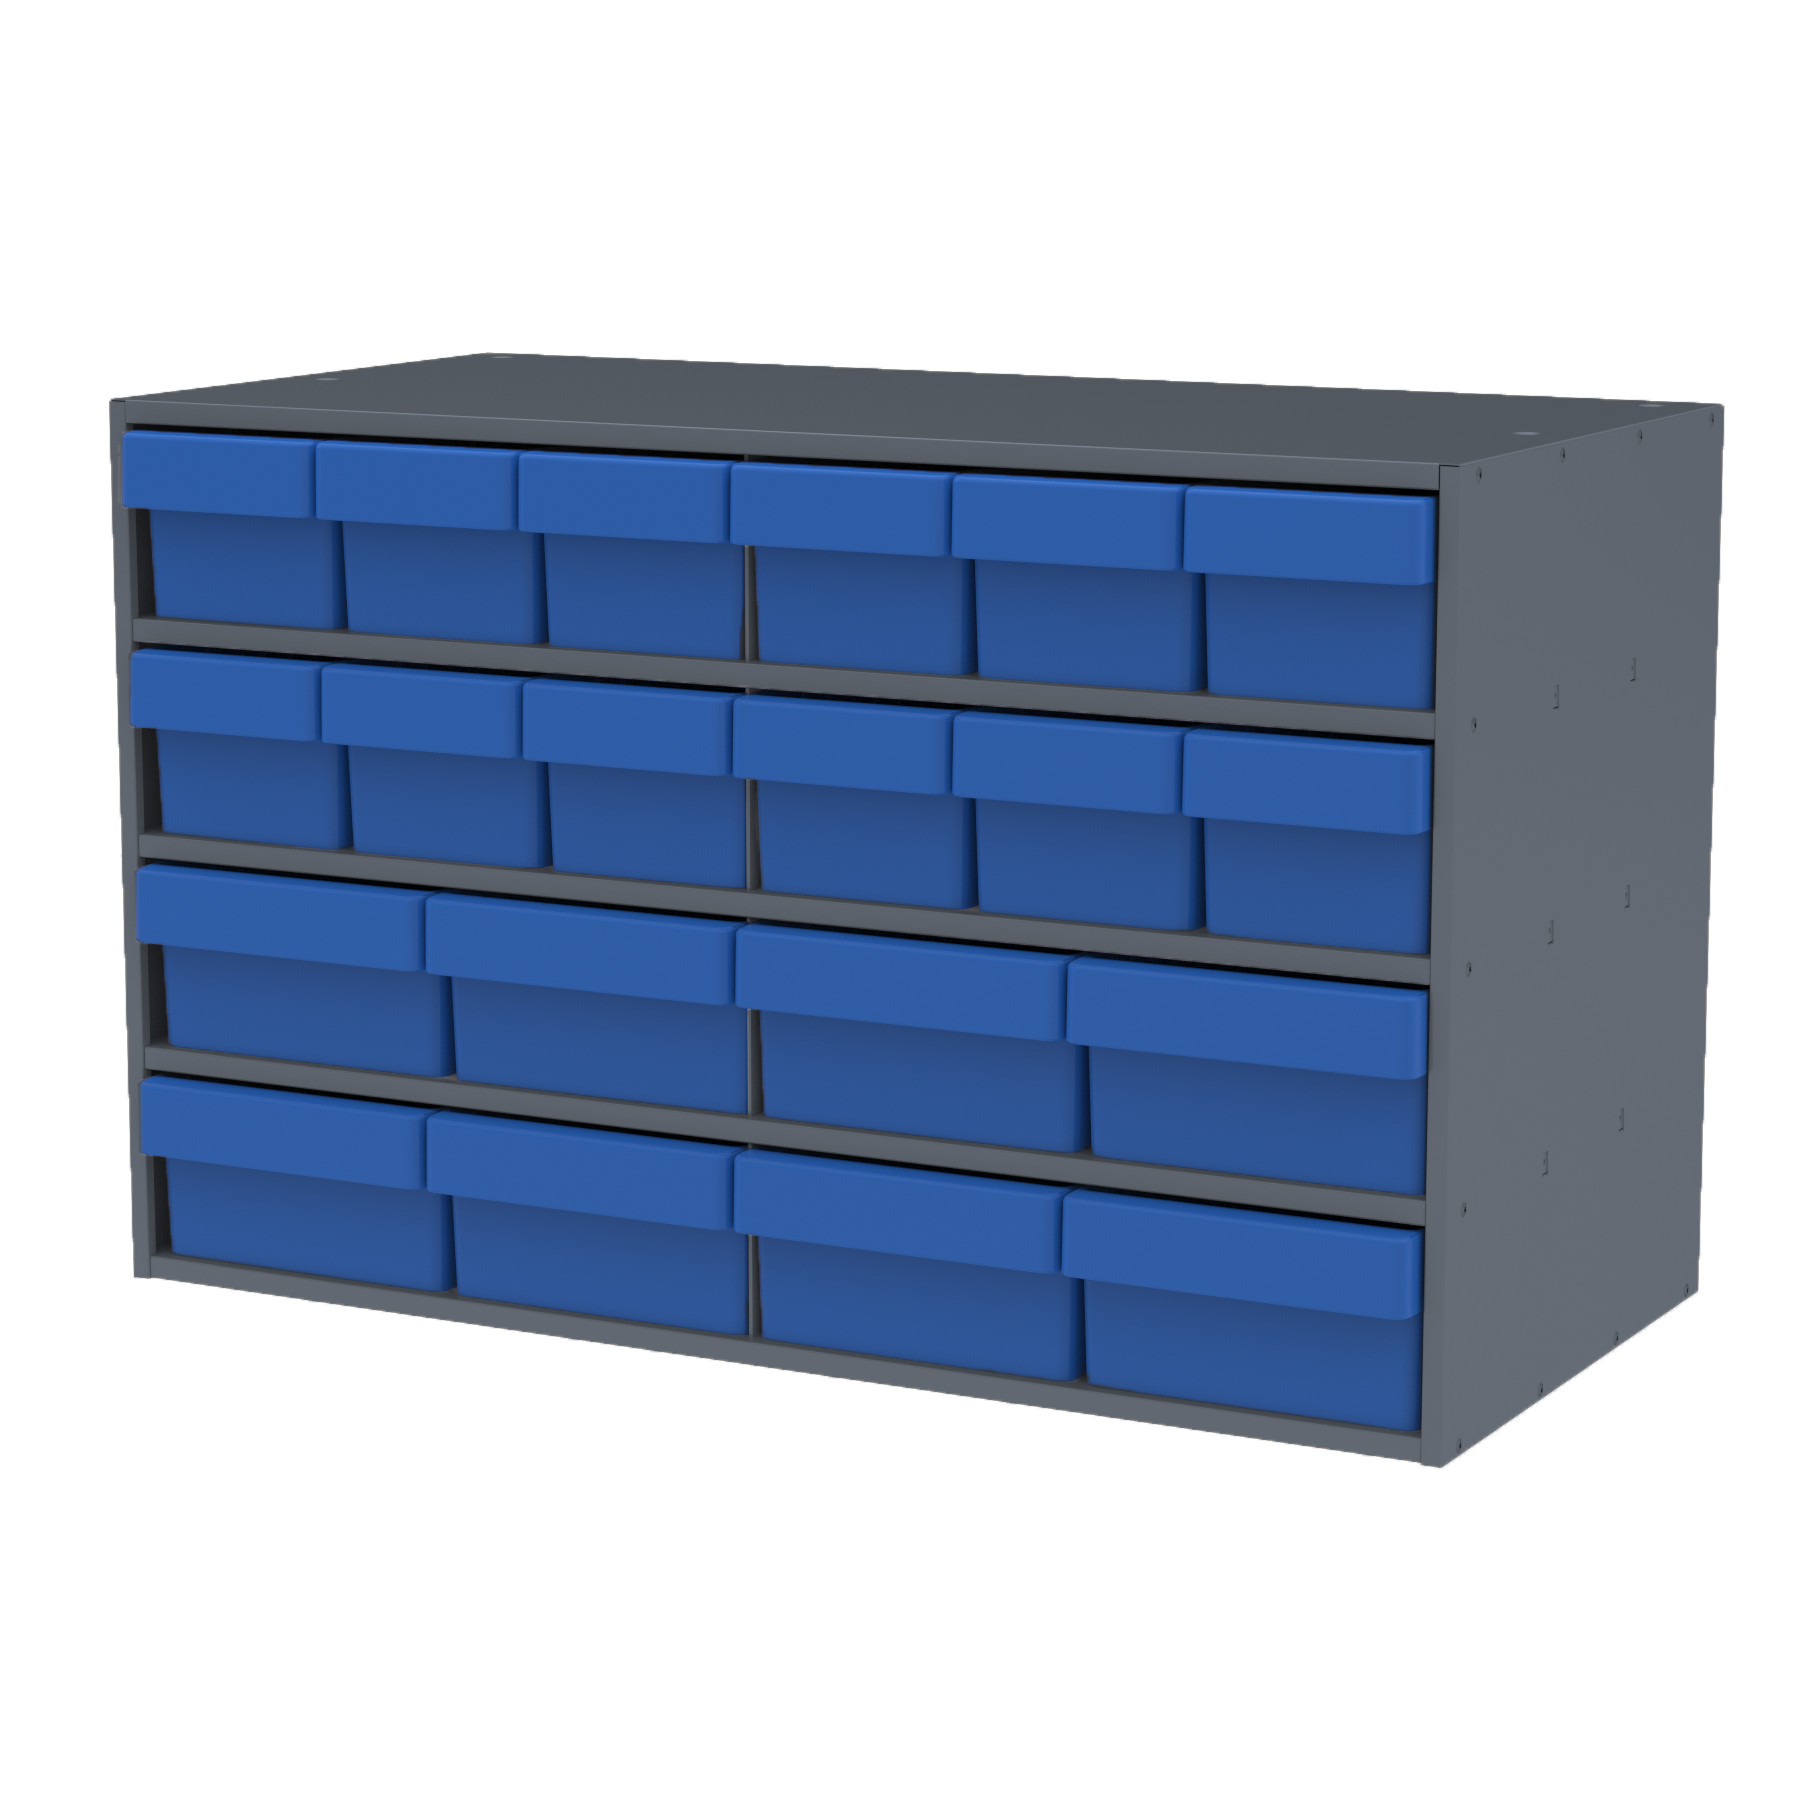 Item DISCONTINUED by Manufacturer.  Stackable Cabinet, 35x17x22, 16 Asst. Drawers, Gray/Blue (AD3517CASTBLU).  This item sold in carton quantities of 1.